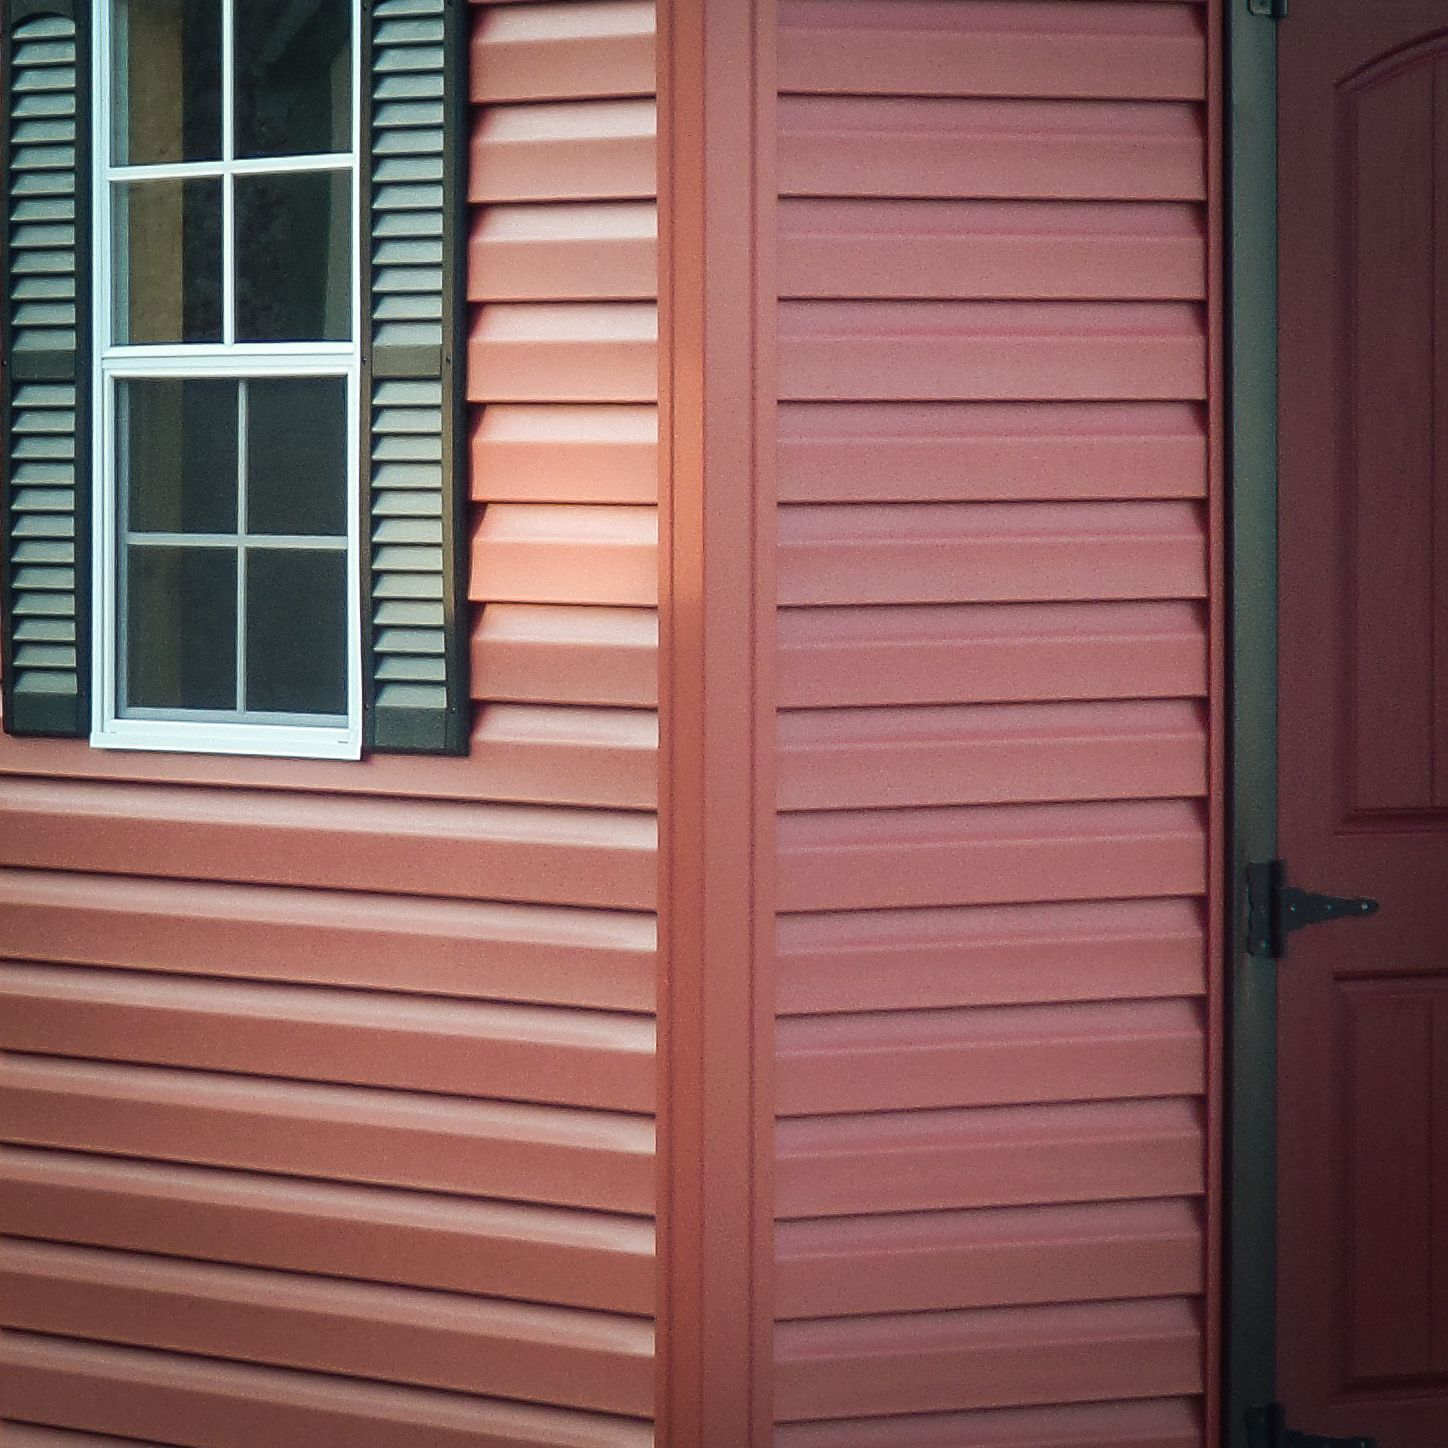 Vinyl siding for custom sheds in KY and TN